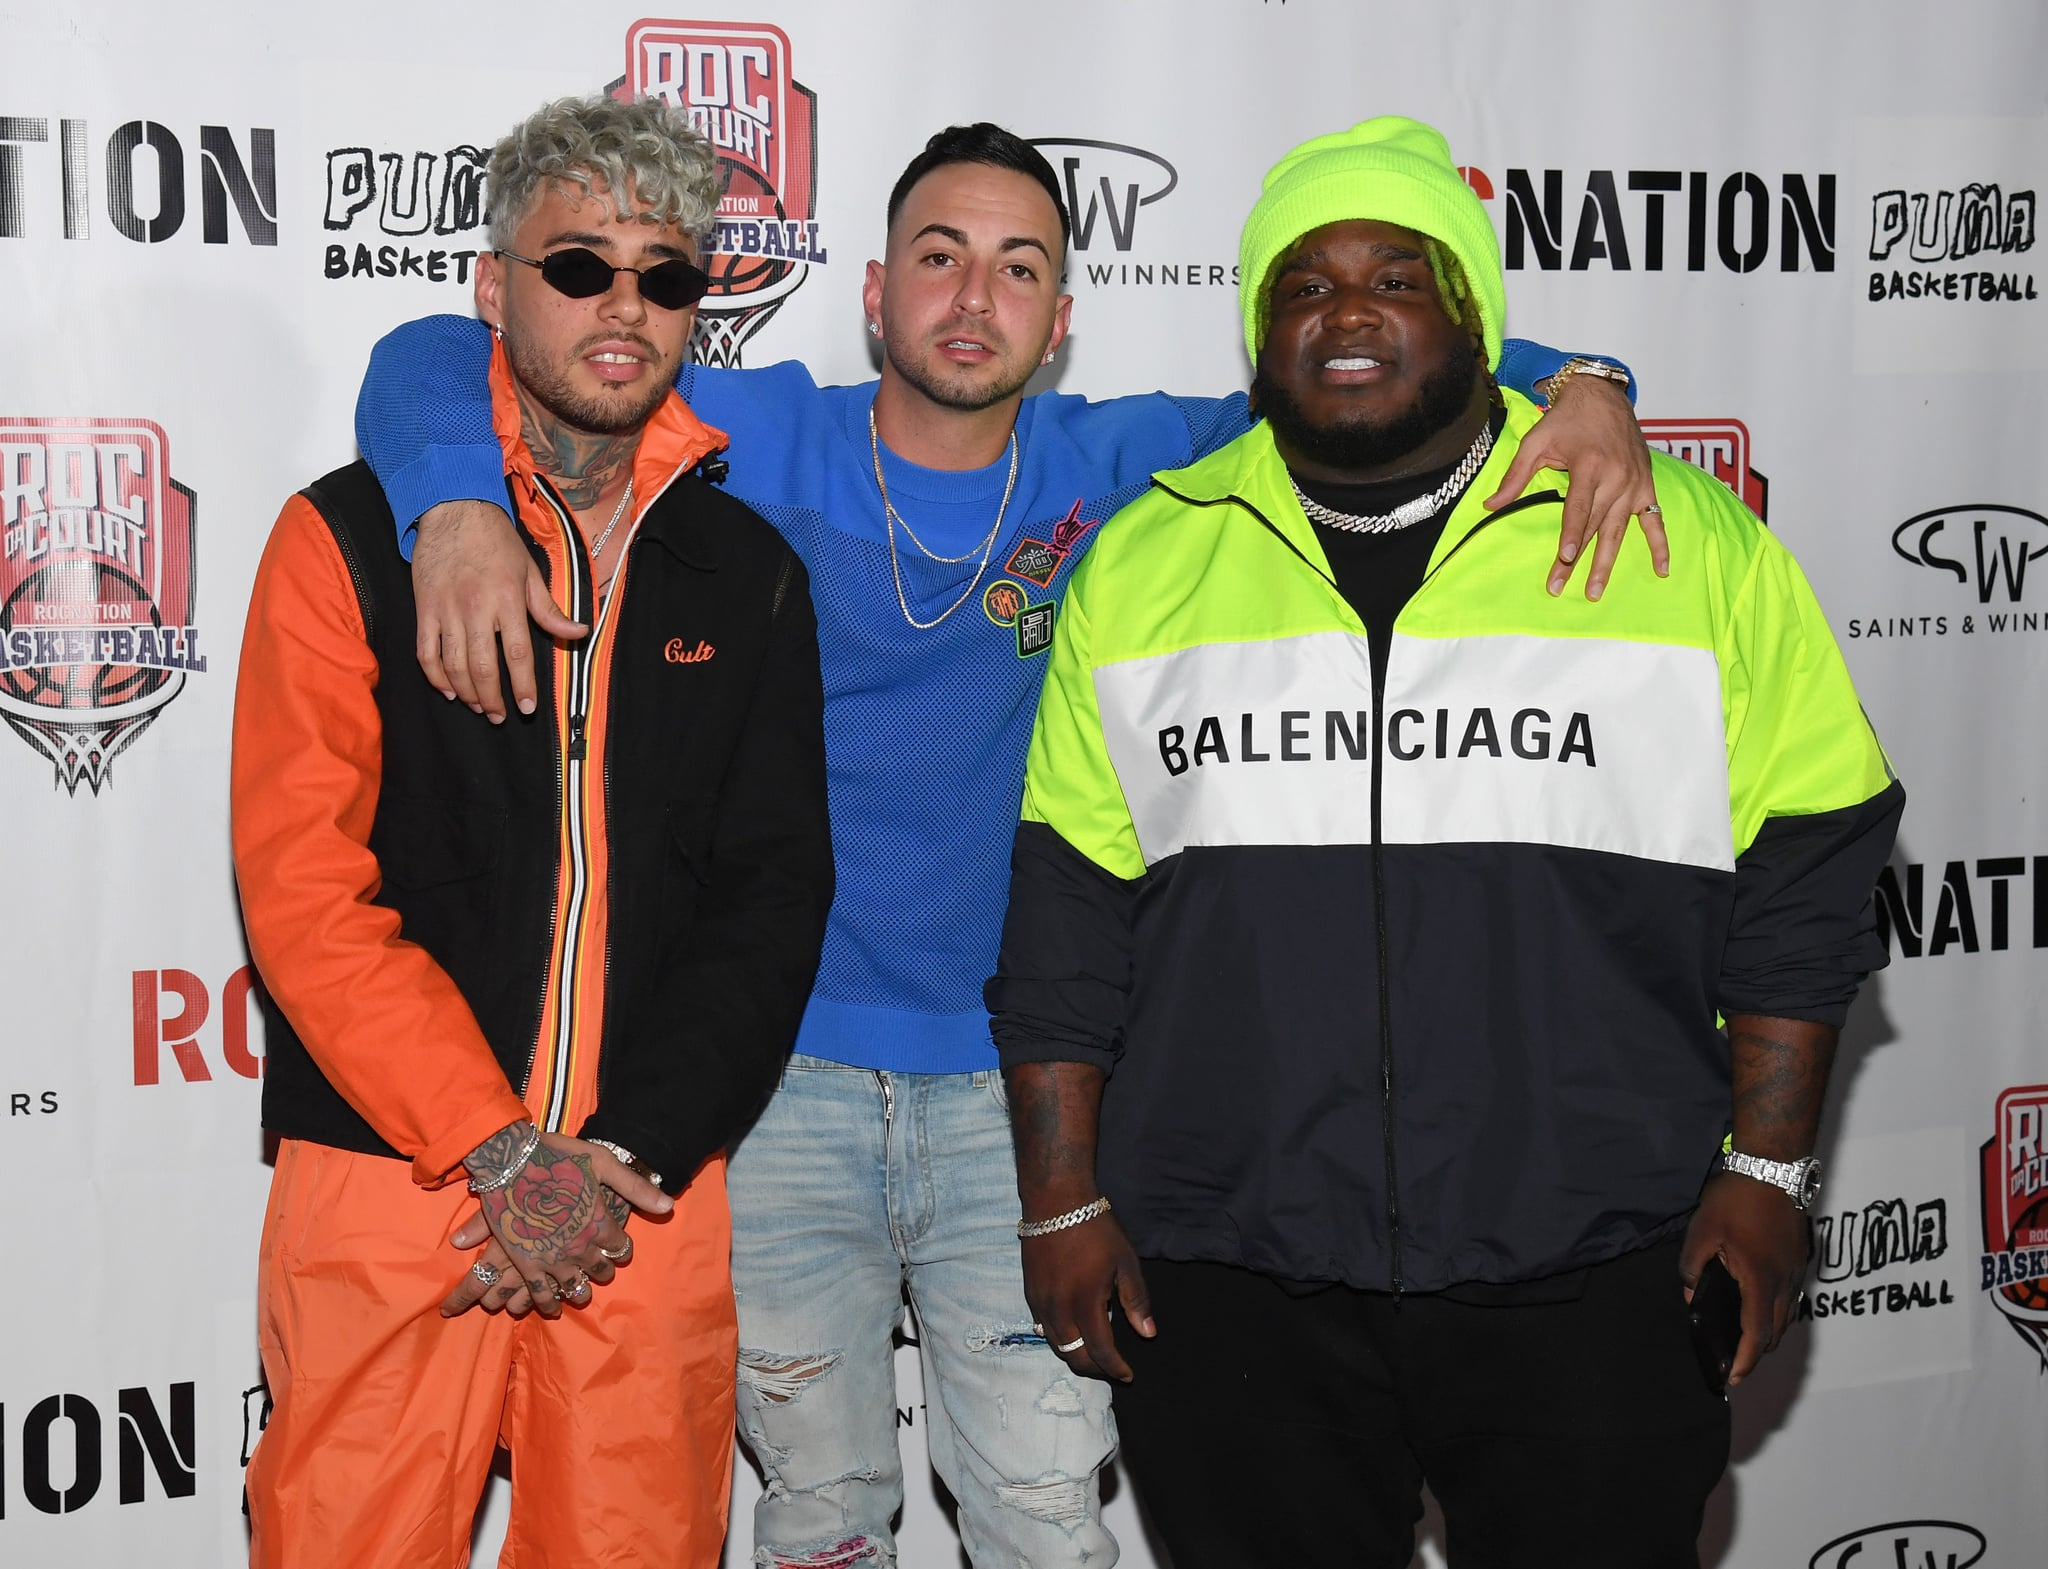 LAS VEGAS, NEVADA - APRIL 24:  (L-R) Singer Dalex, rapper Justin Quiles and recording artist Sech arrive at Roc Nation's Roc da Court all-star basketball game benefiting the Boys & Girls Clubs of Southern Nevada at Tarkanian Court on April 24, 2019 in Las Vegas, Nevada.  (Photo by Ethan Miller/Getty Images)